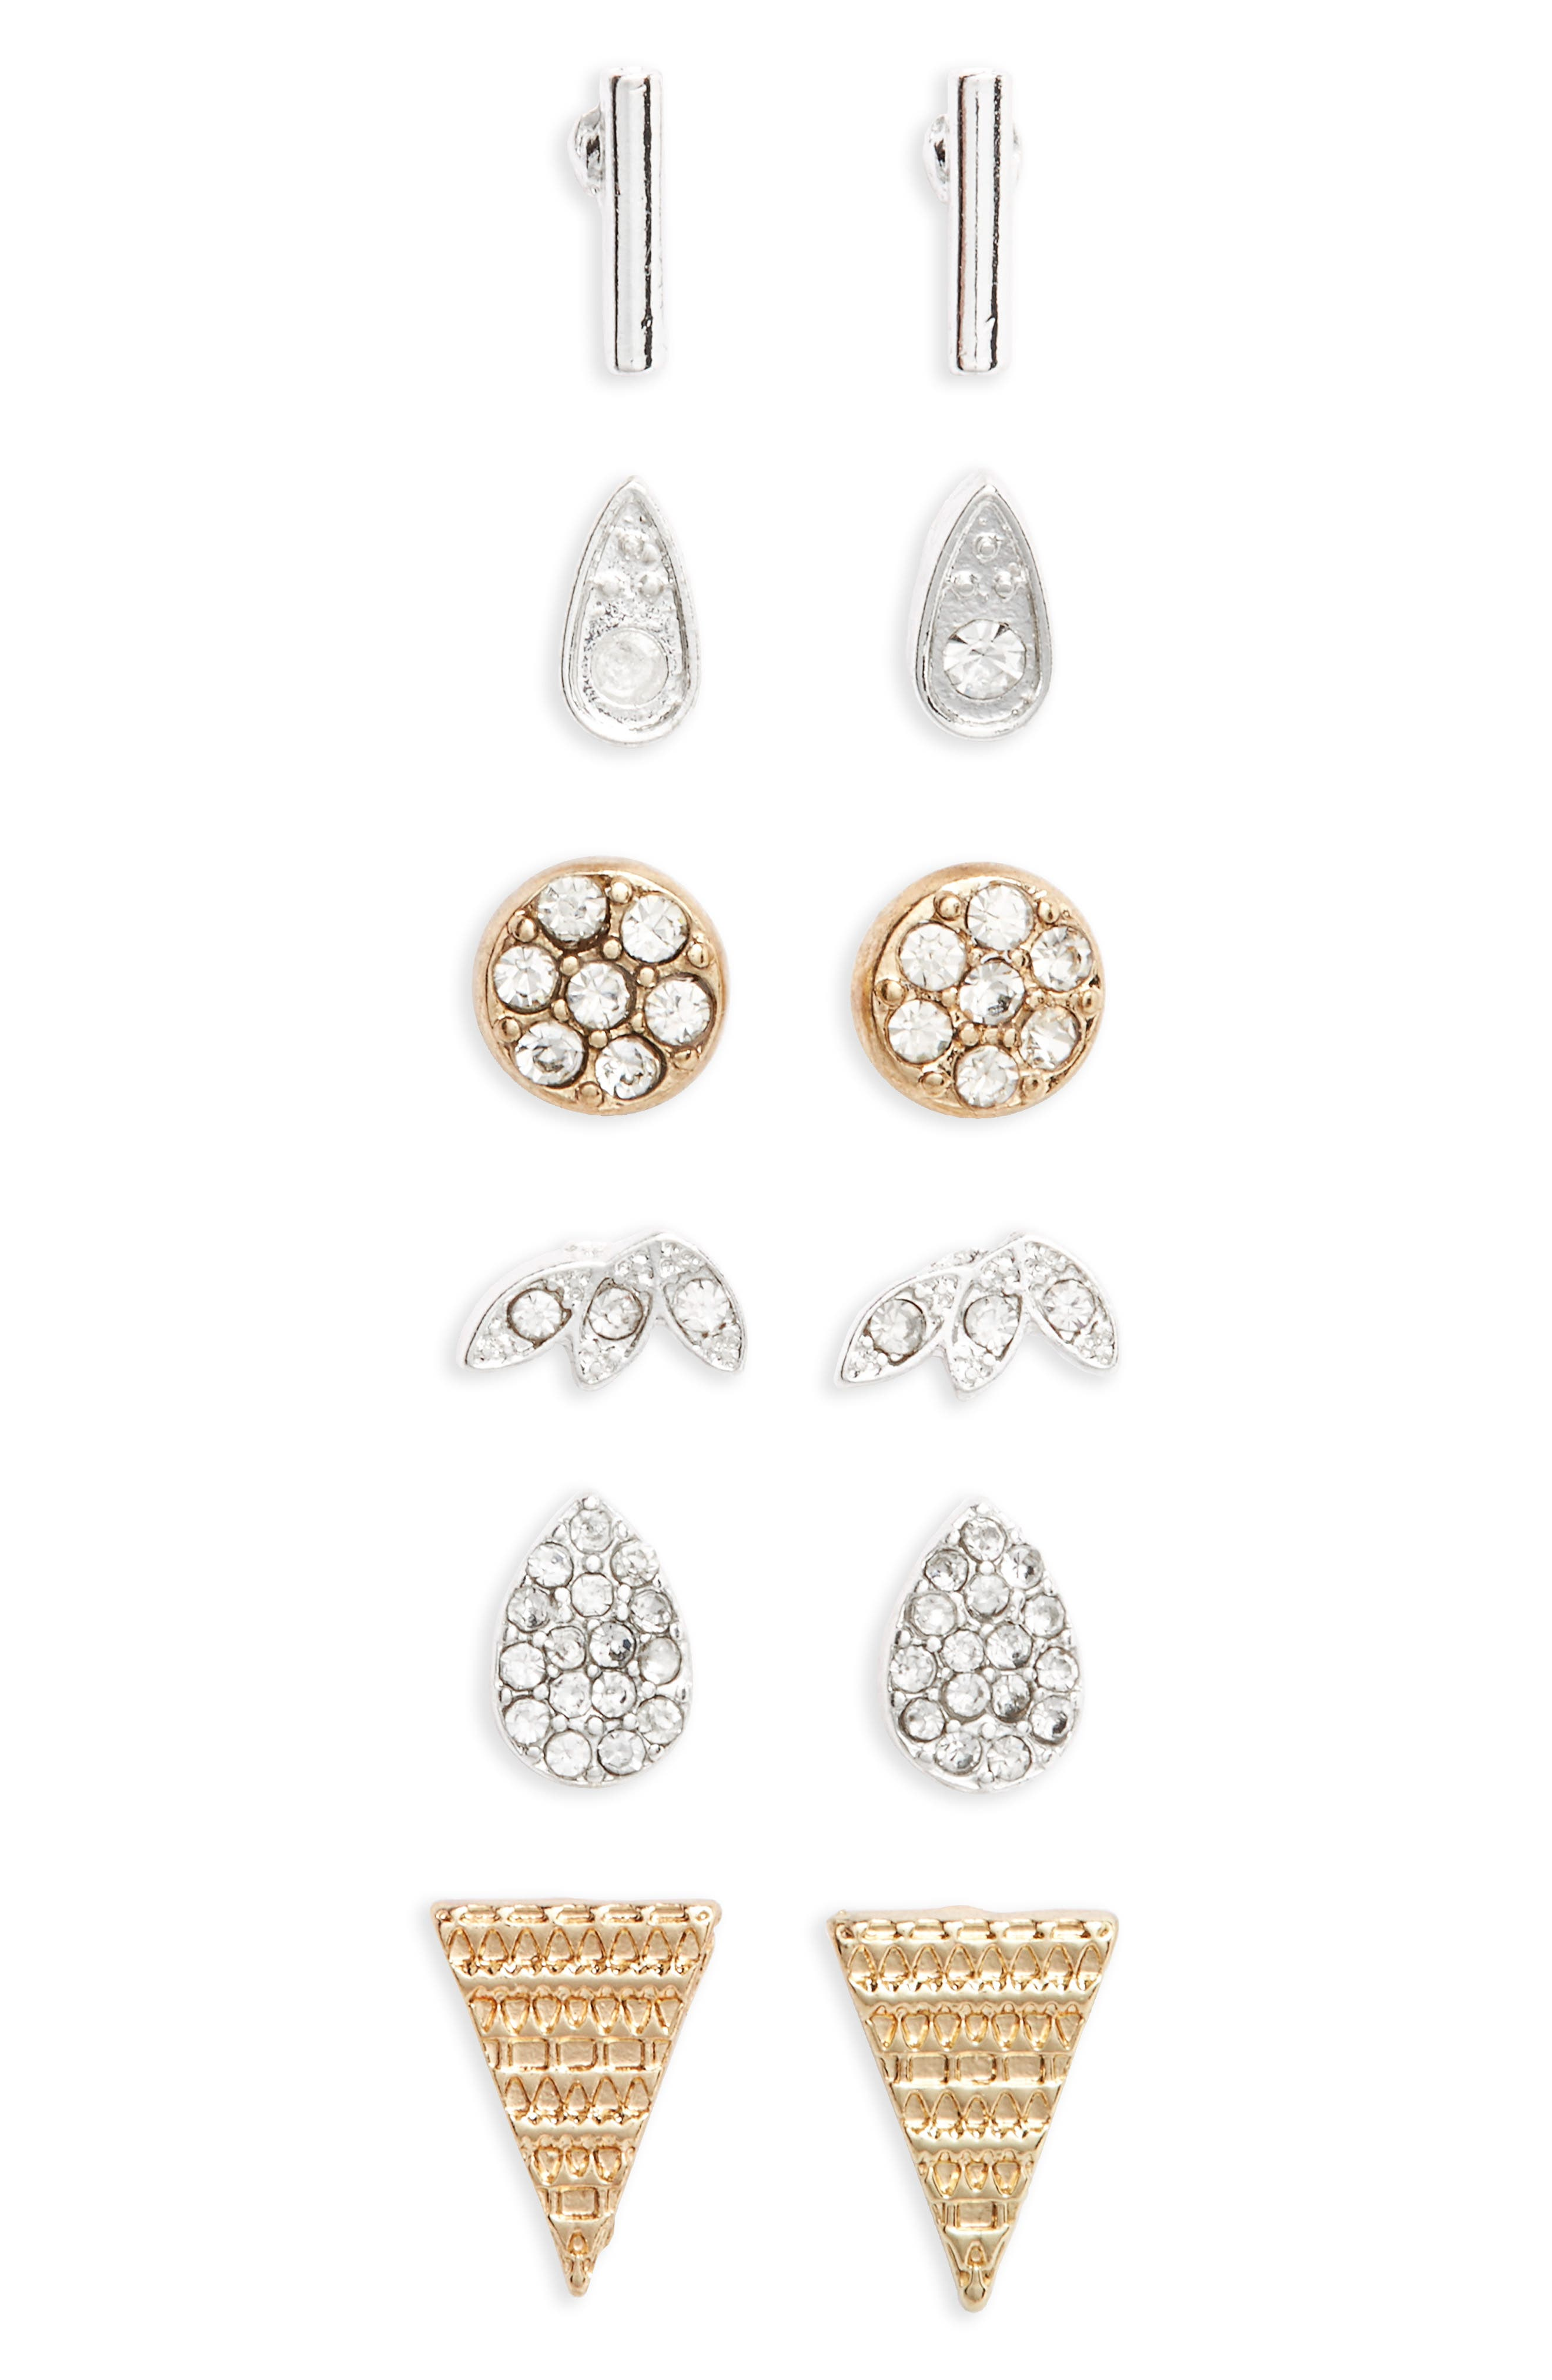 6-Pack Crystal Stud Earrings,                         Main,                         color, Gold/ Silver